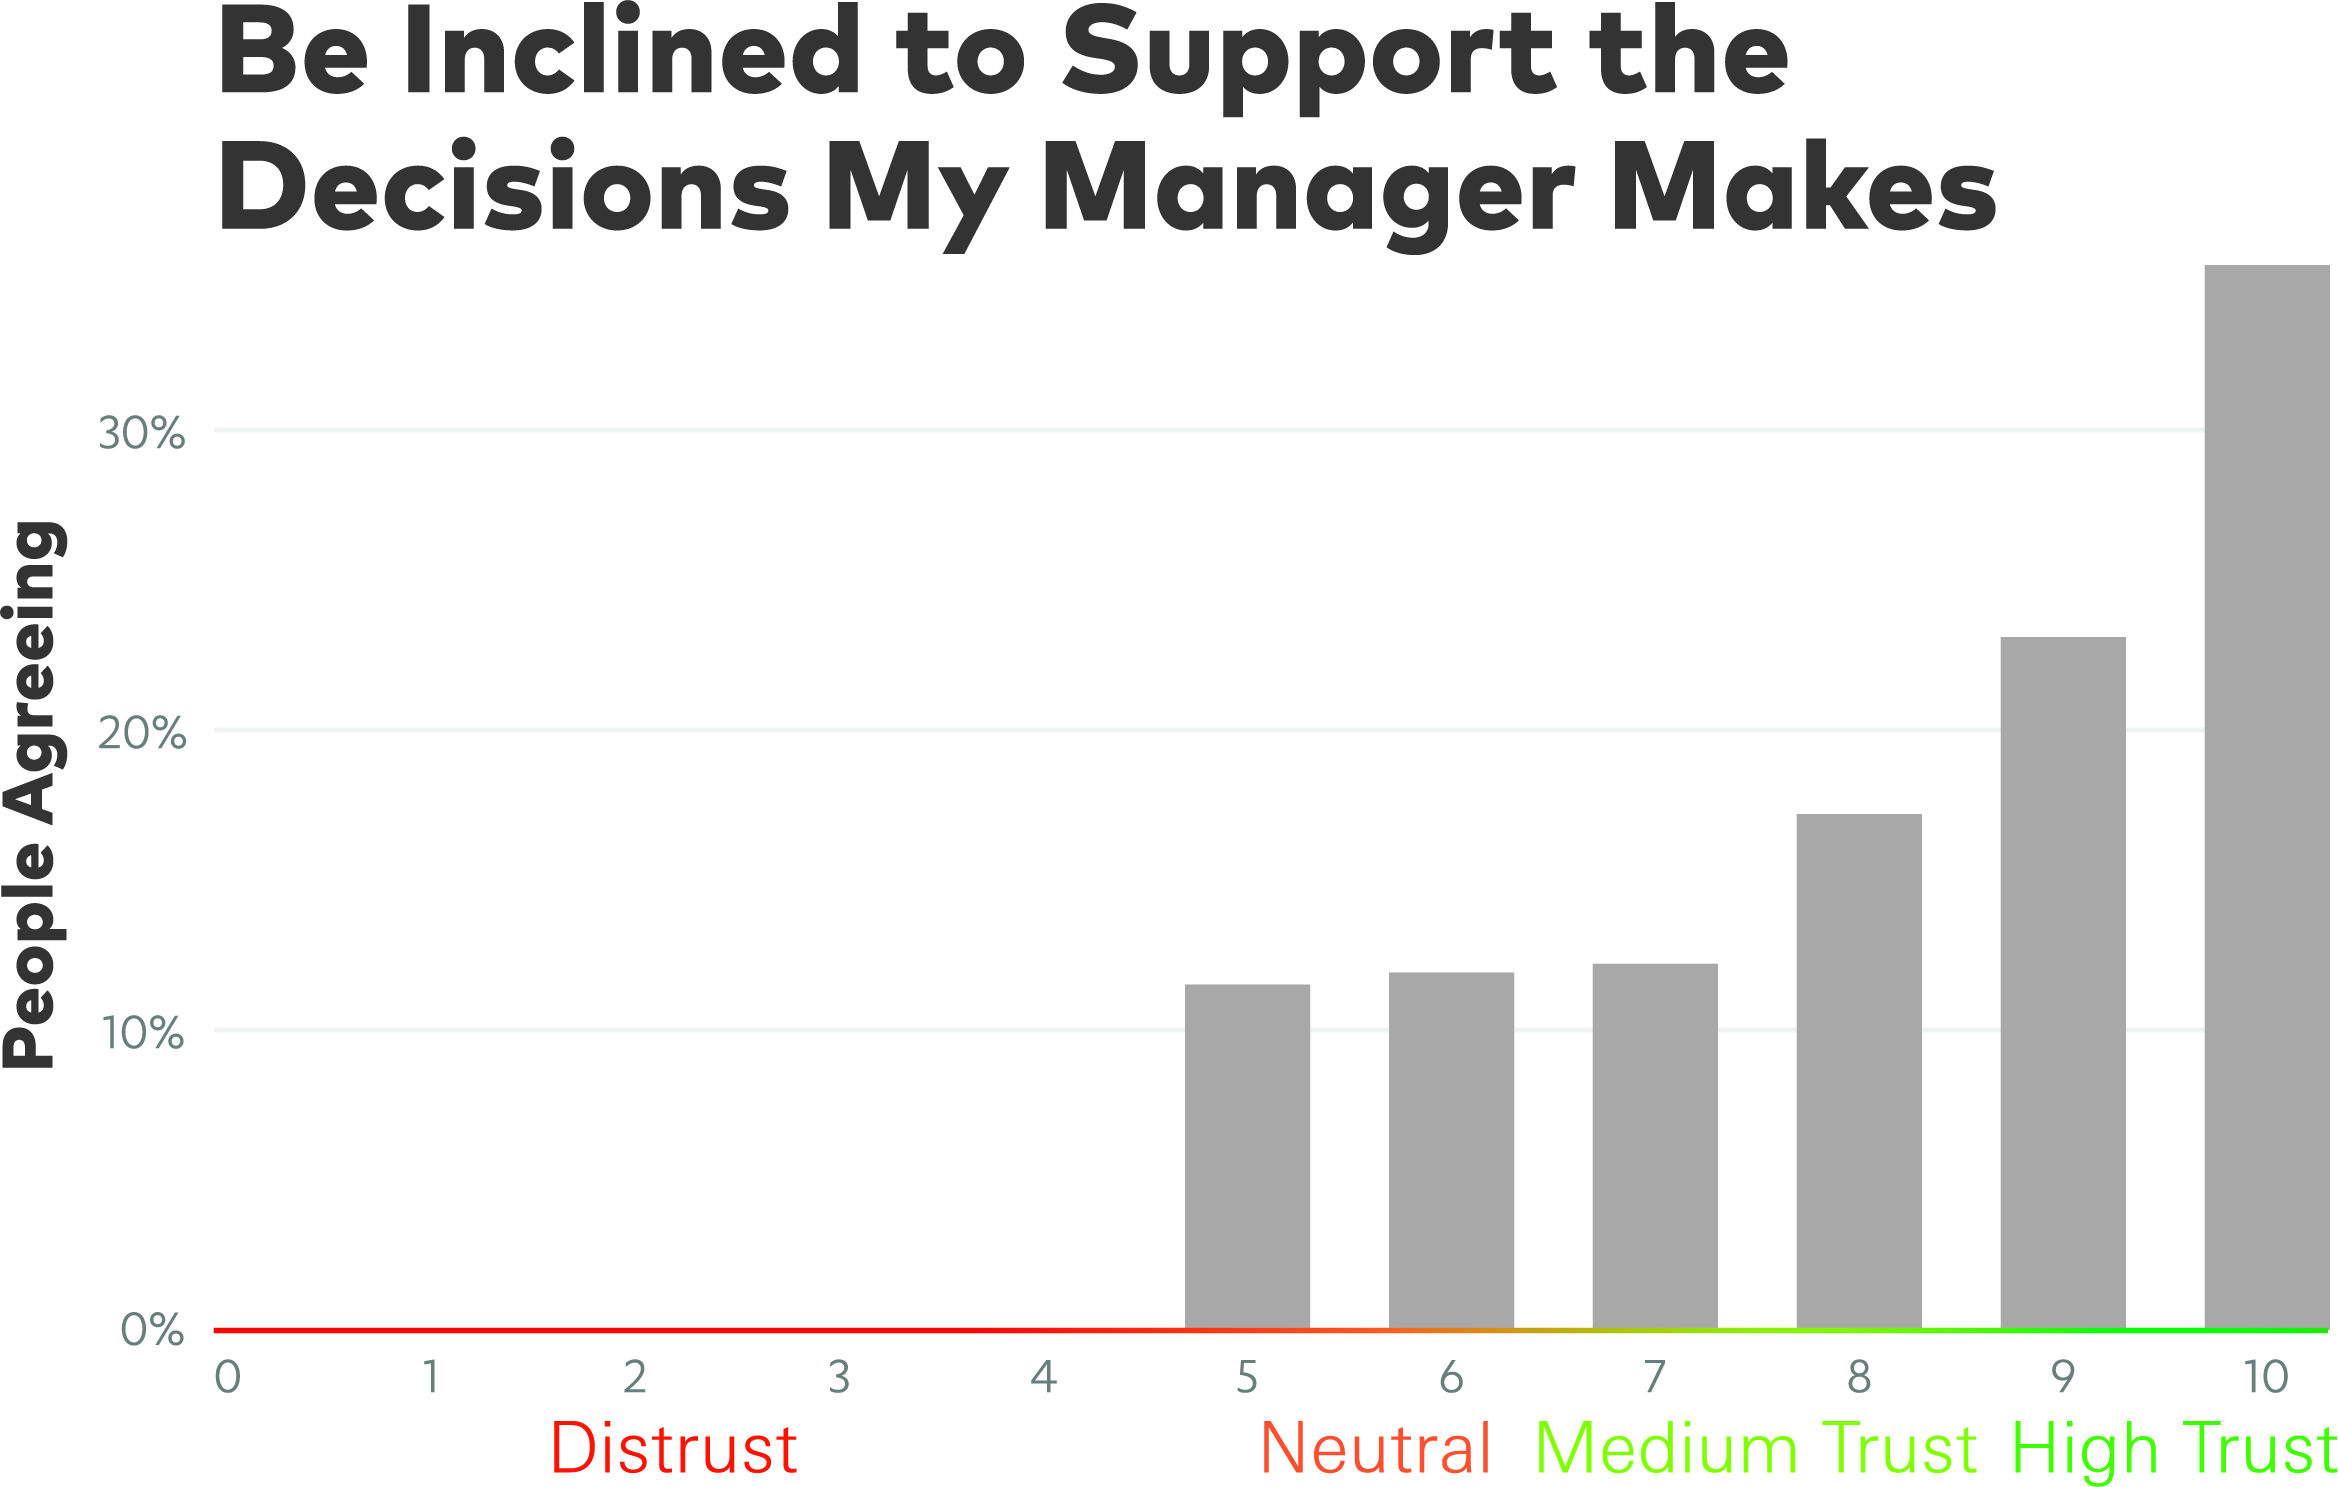 Mext_Consulting_Firm_Melbourne_Trust_Trustify_Stepping_Chart_Support_Manager.jpg